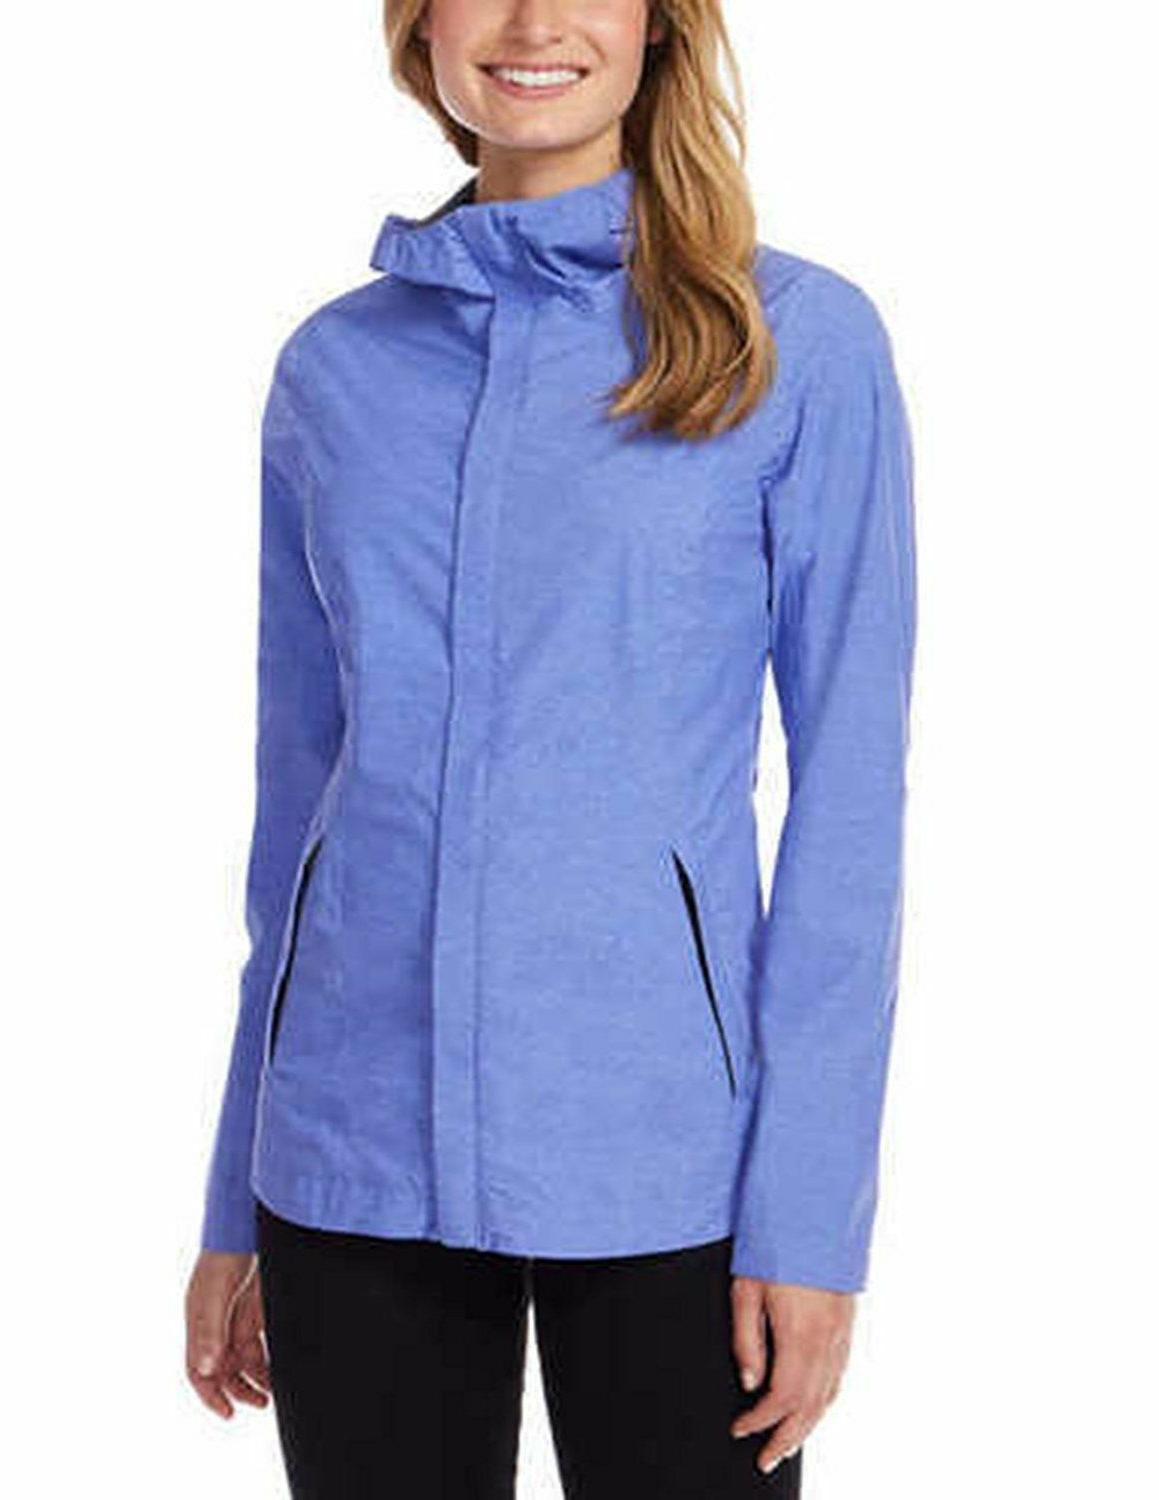 SALE! Women's Waterproof VARIETY OF SIZE AND COLOR